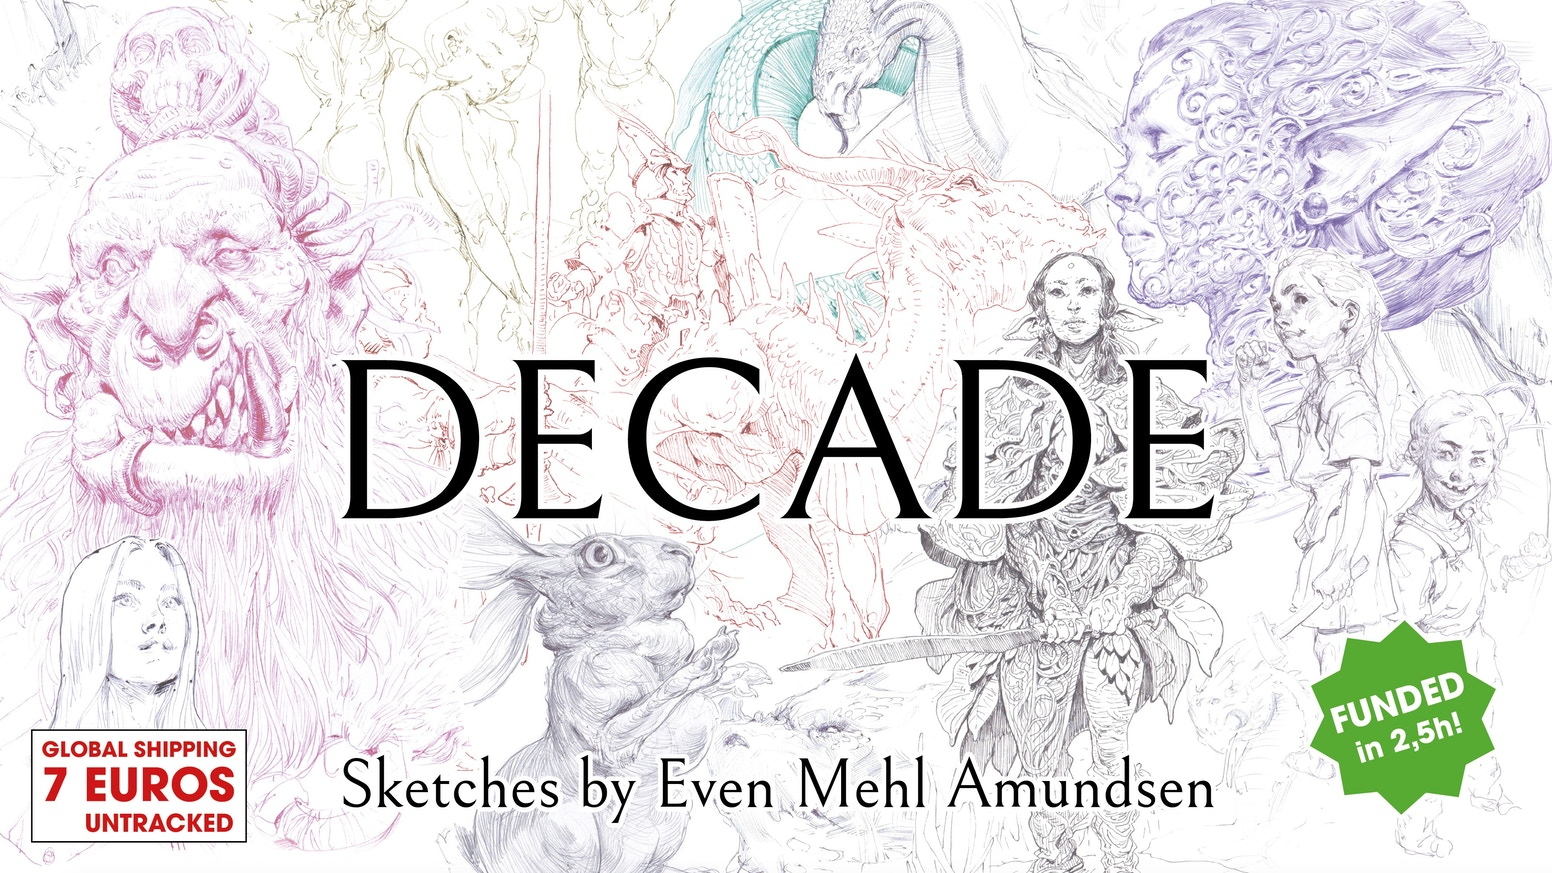 Even Mehl Amundsen's selection of sketches made between 2009 and 2019 in a 300 page book.